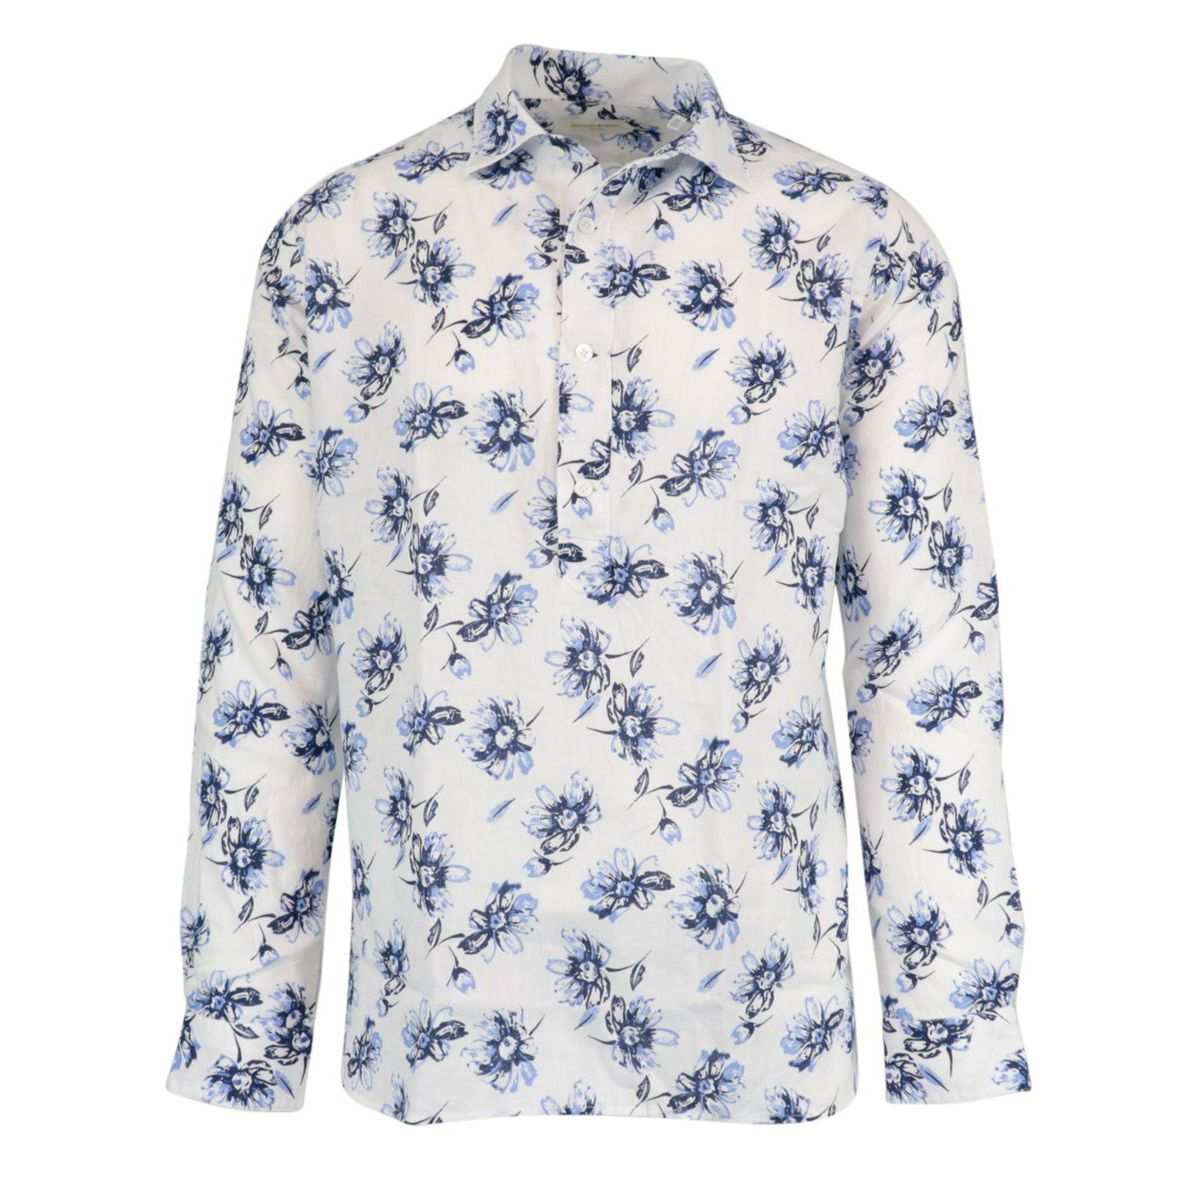 Regular-fit shirt in three-button cotton and linen blend with French print and collar White Guglielminotti